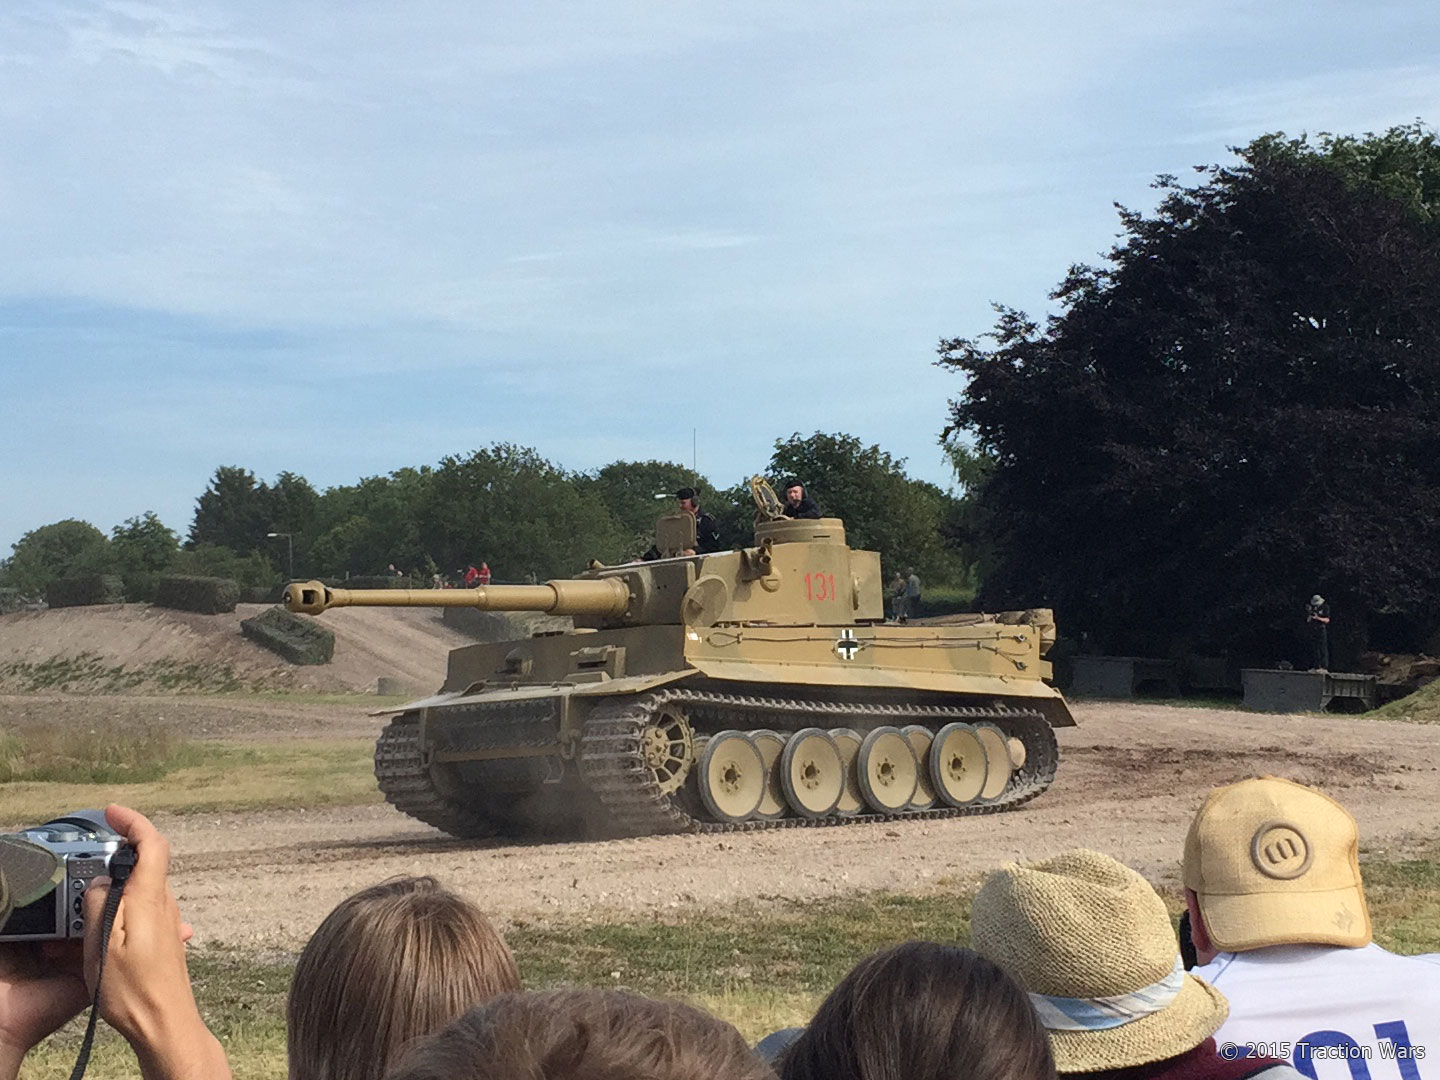 Tiger I No.131 rumbles around the arena